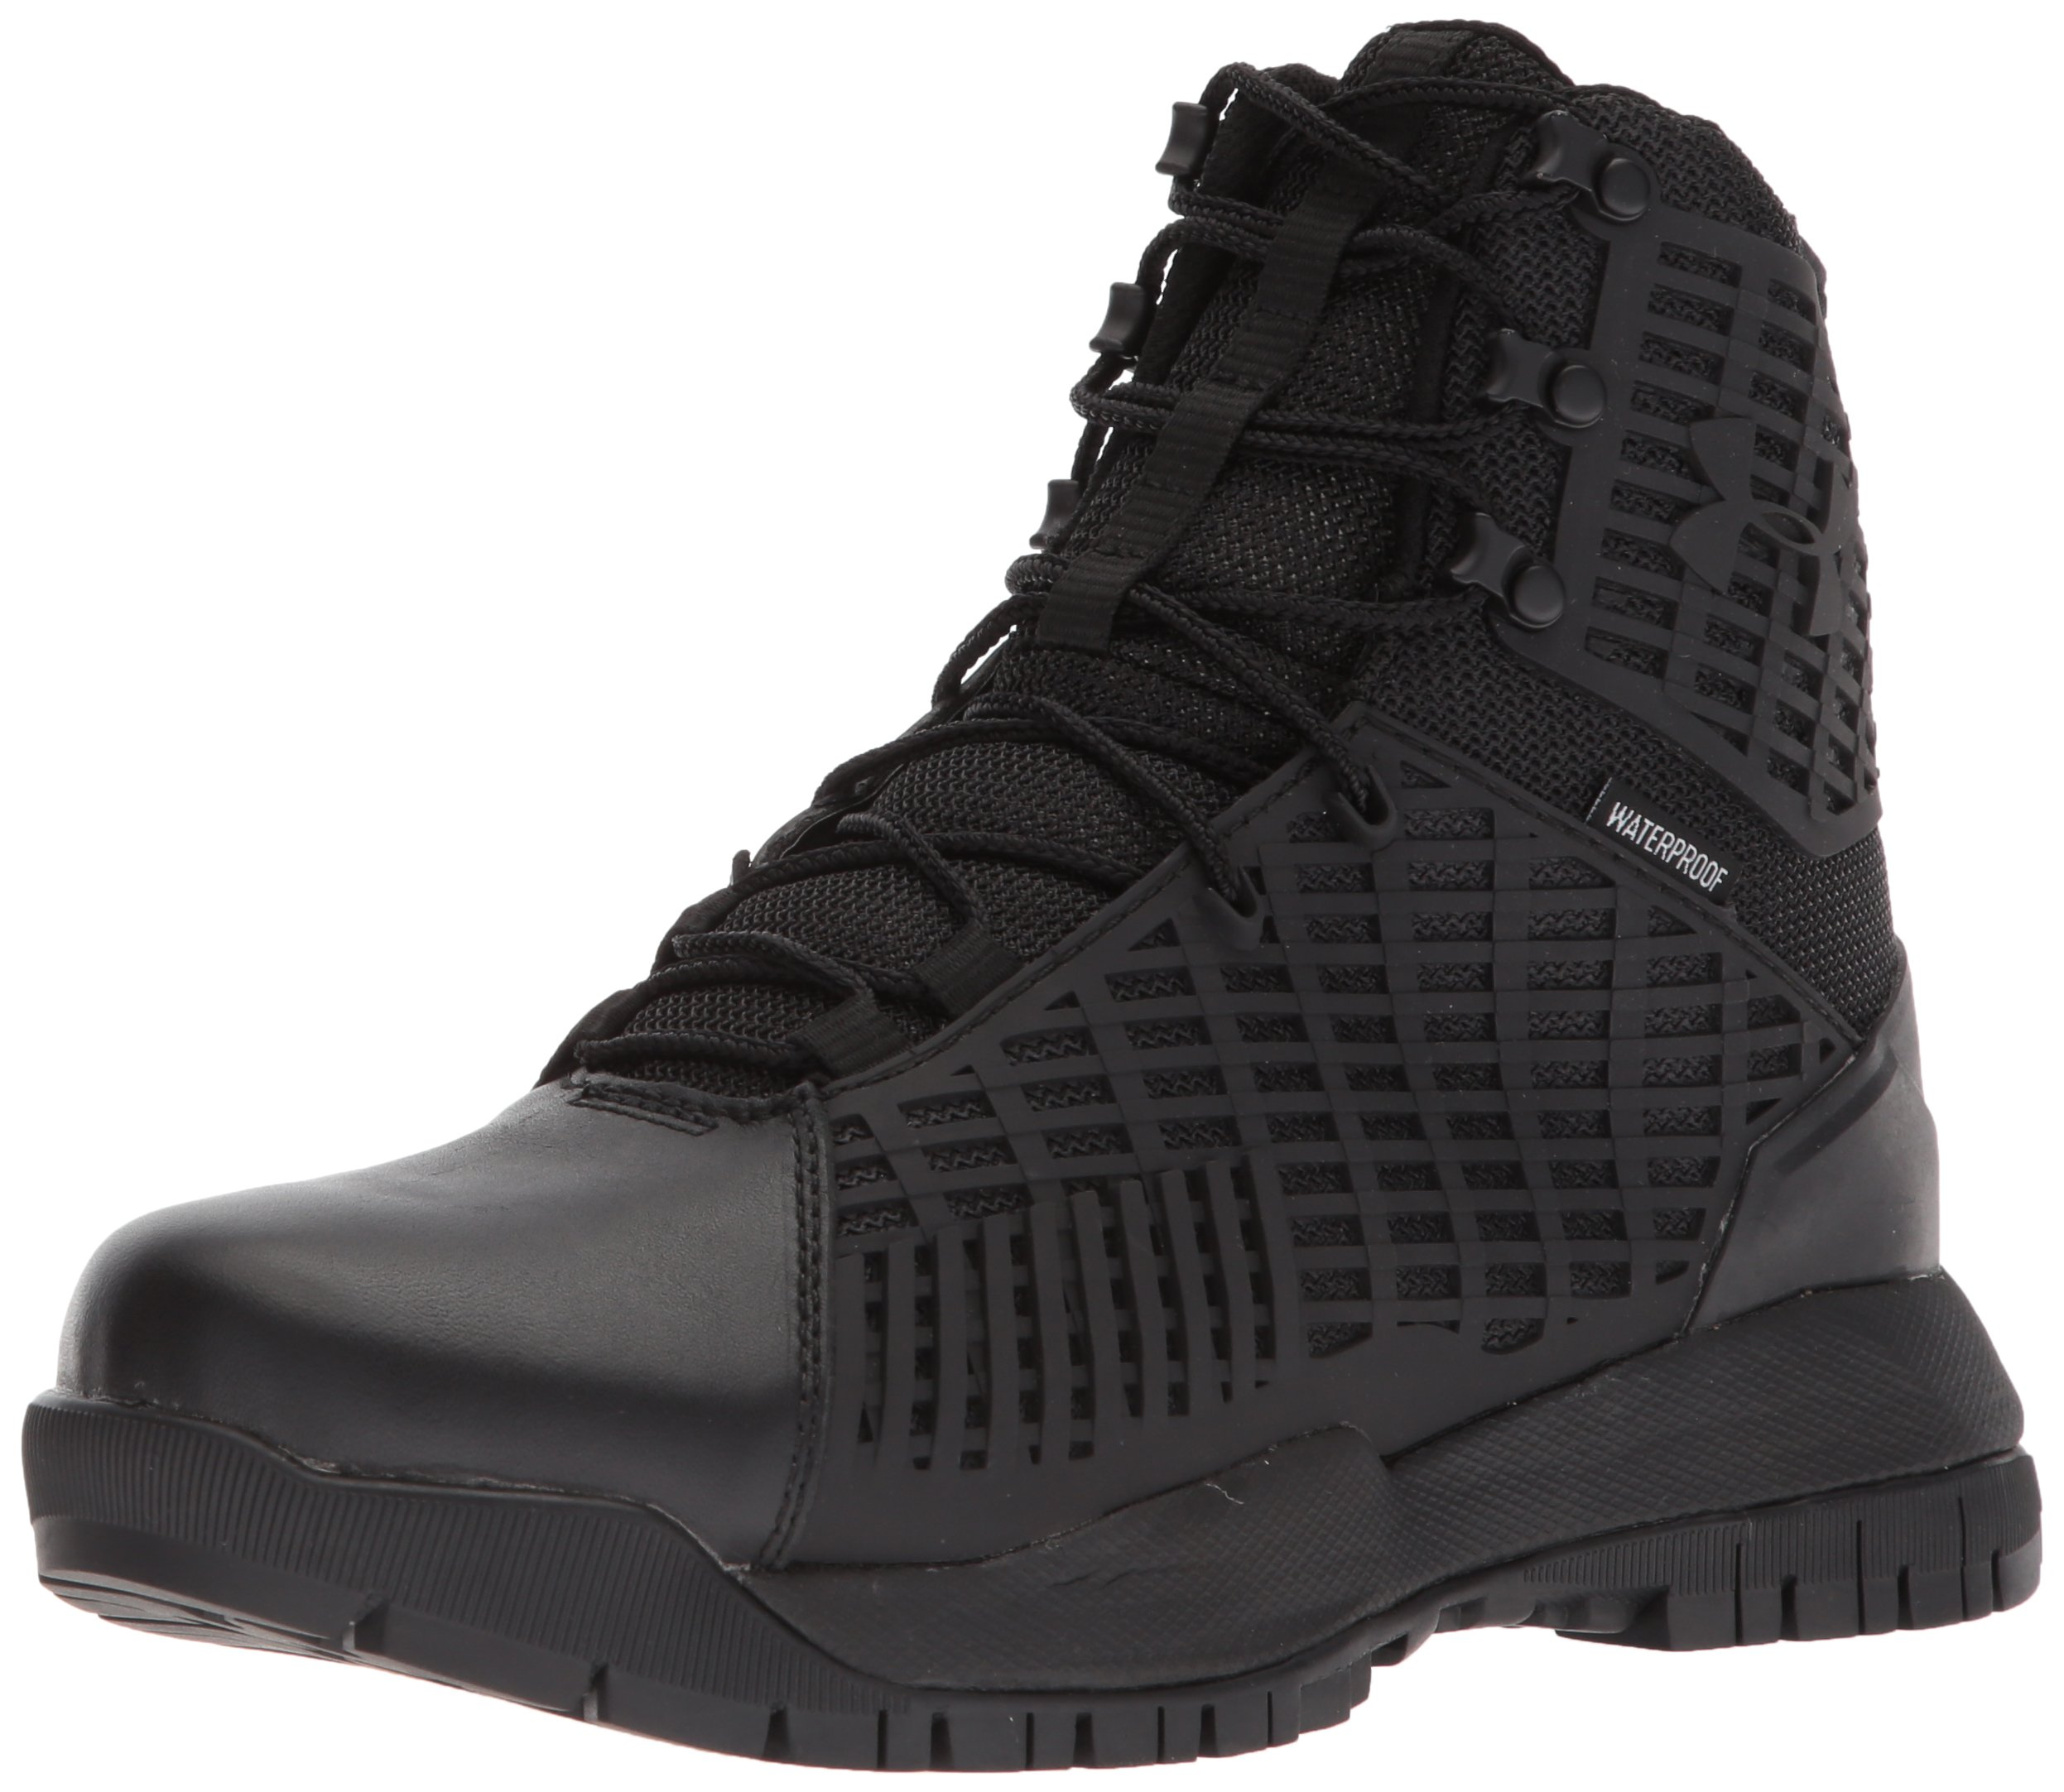 Under Armour Women's Stryker Waterproof Military and Tactical Boot, Black (001)/Black, 7